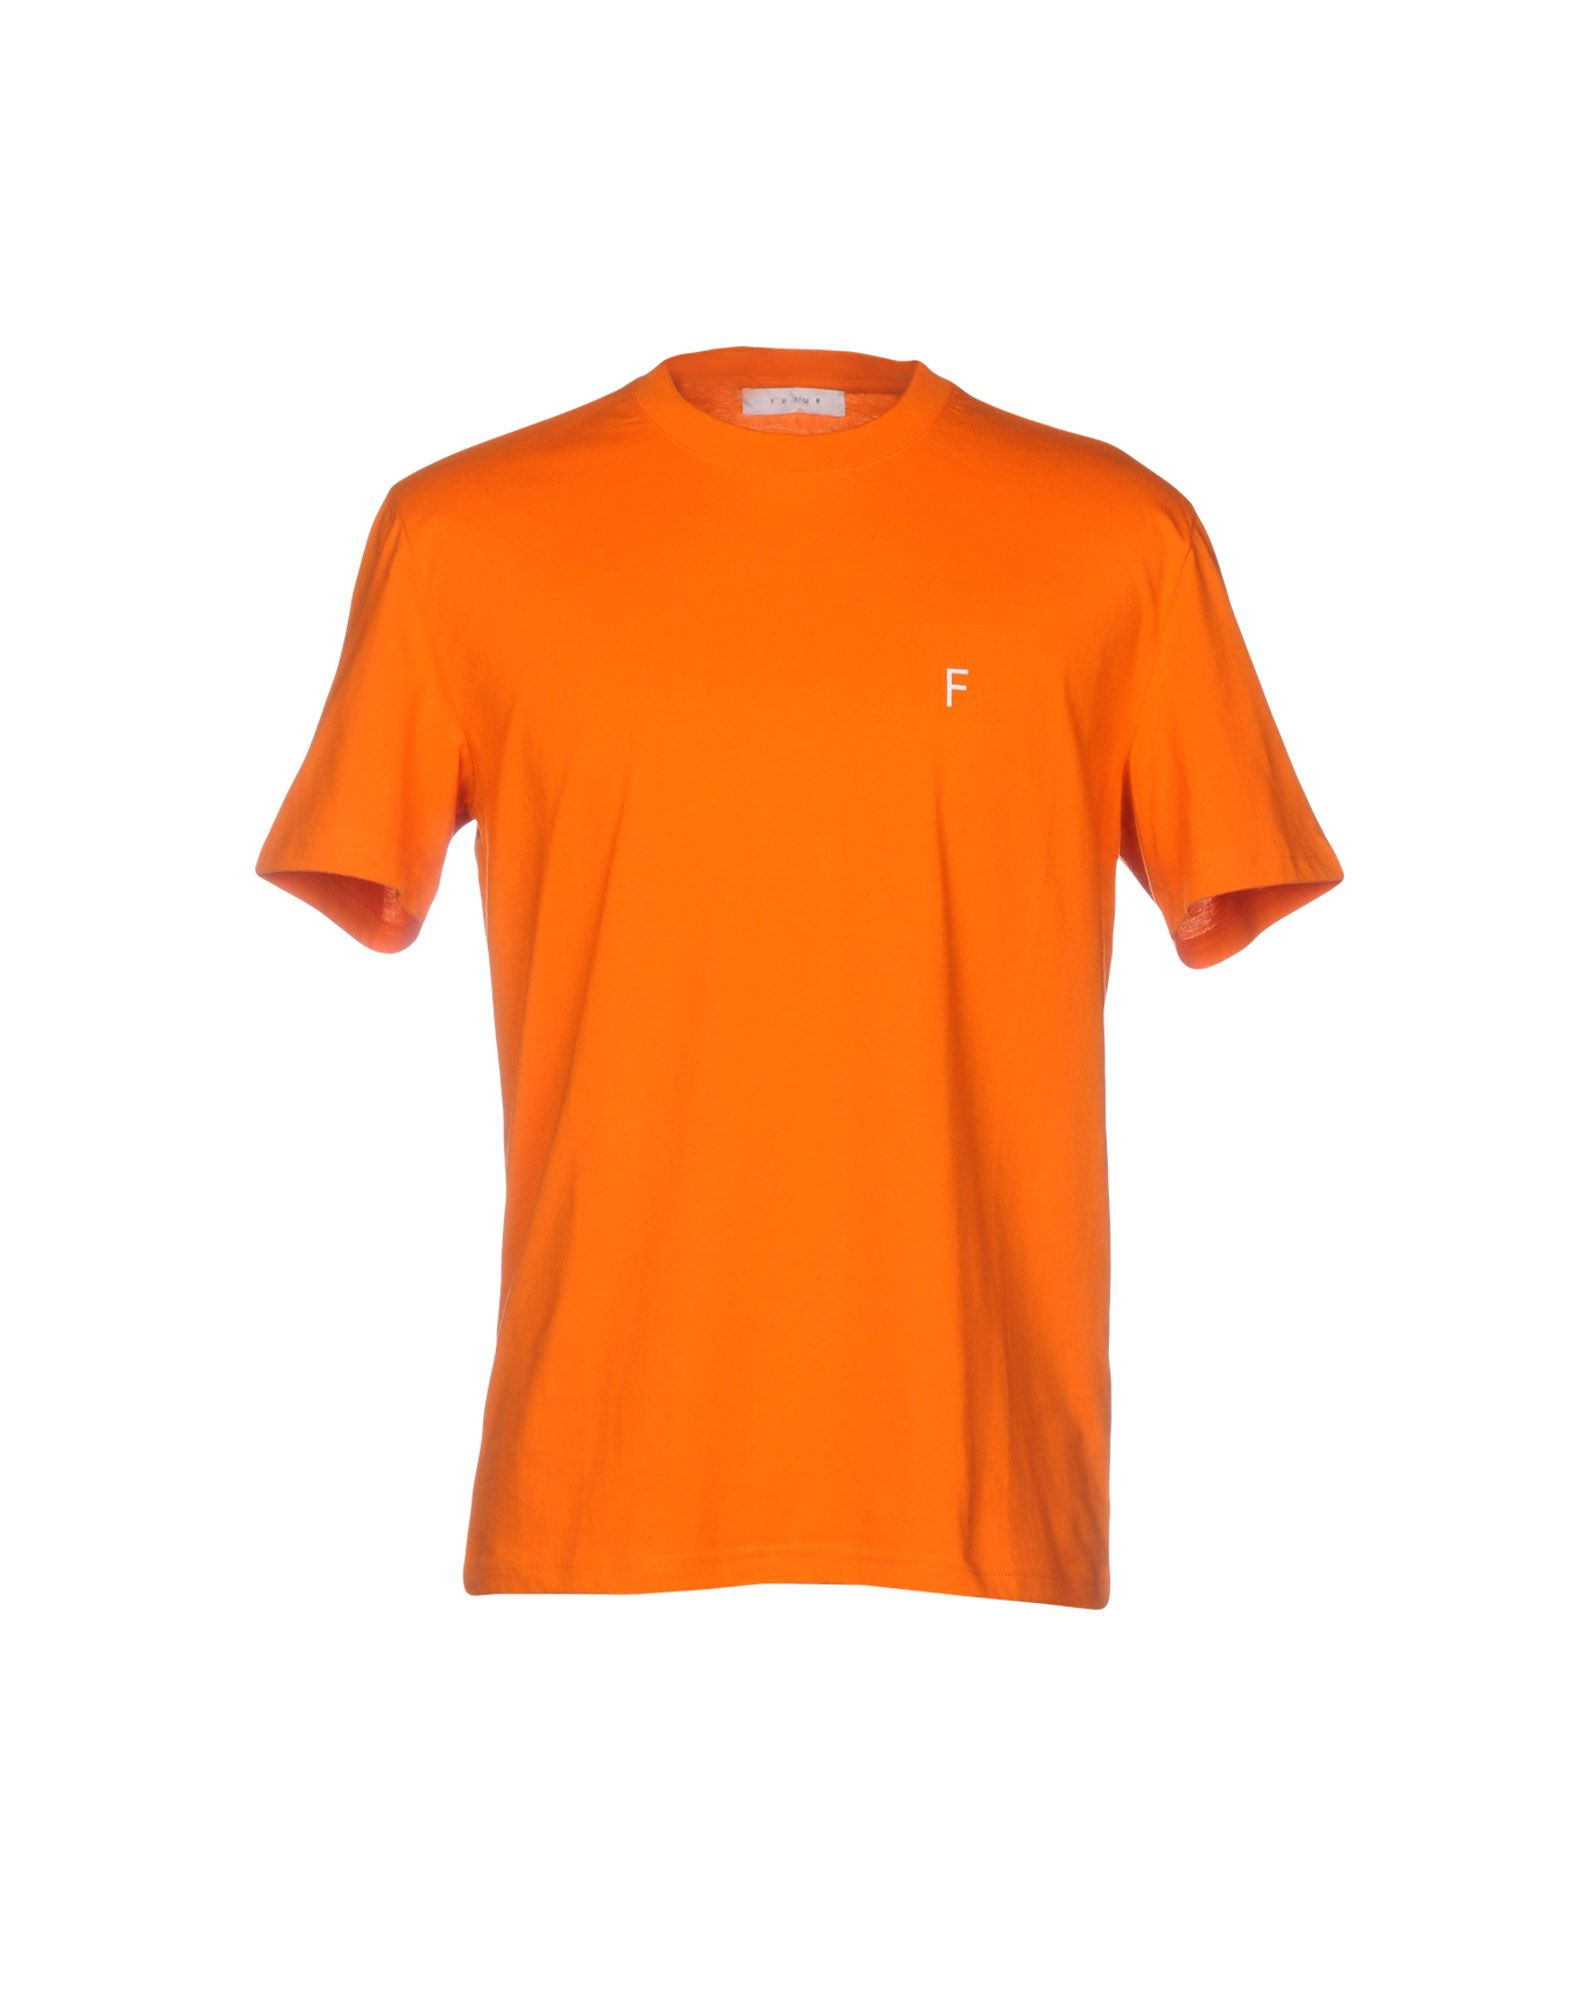 FUTUR T-Shirt in Orange